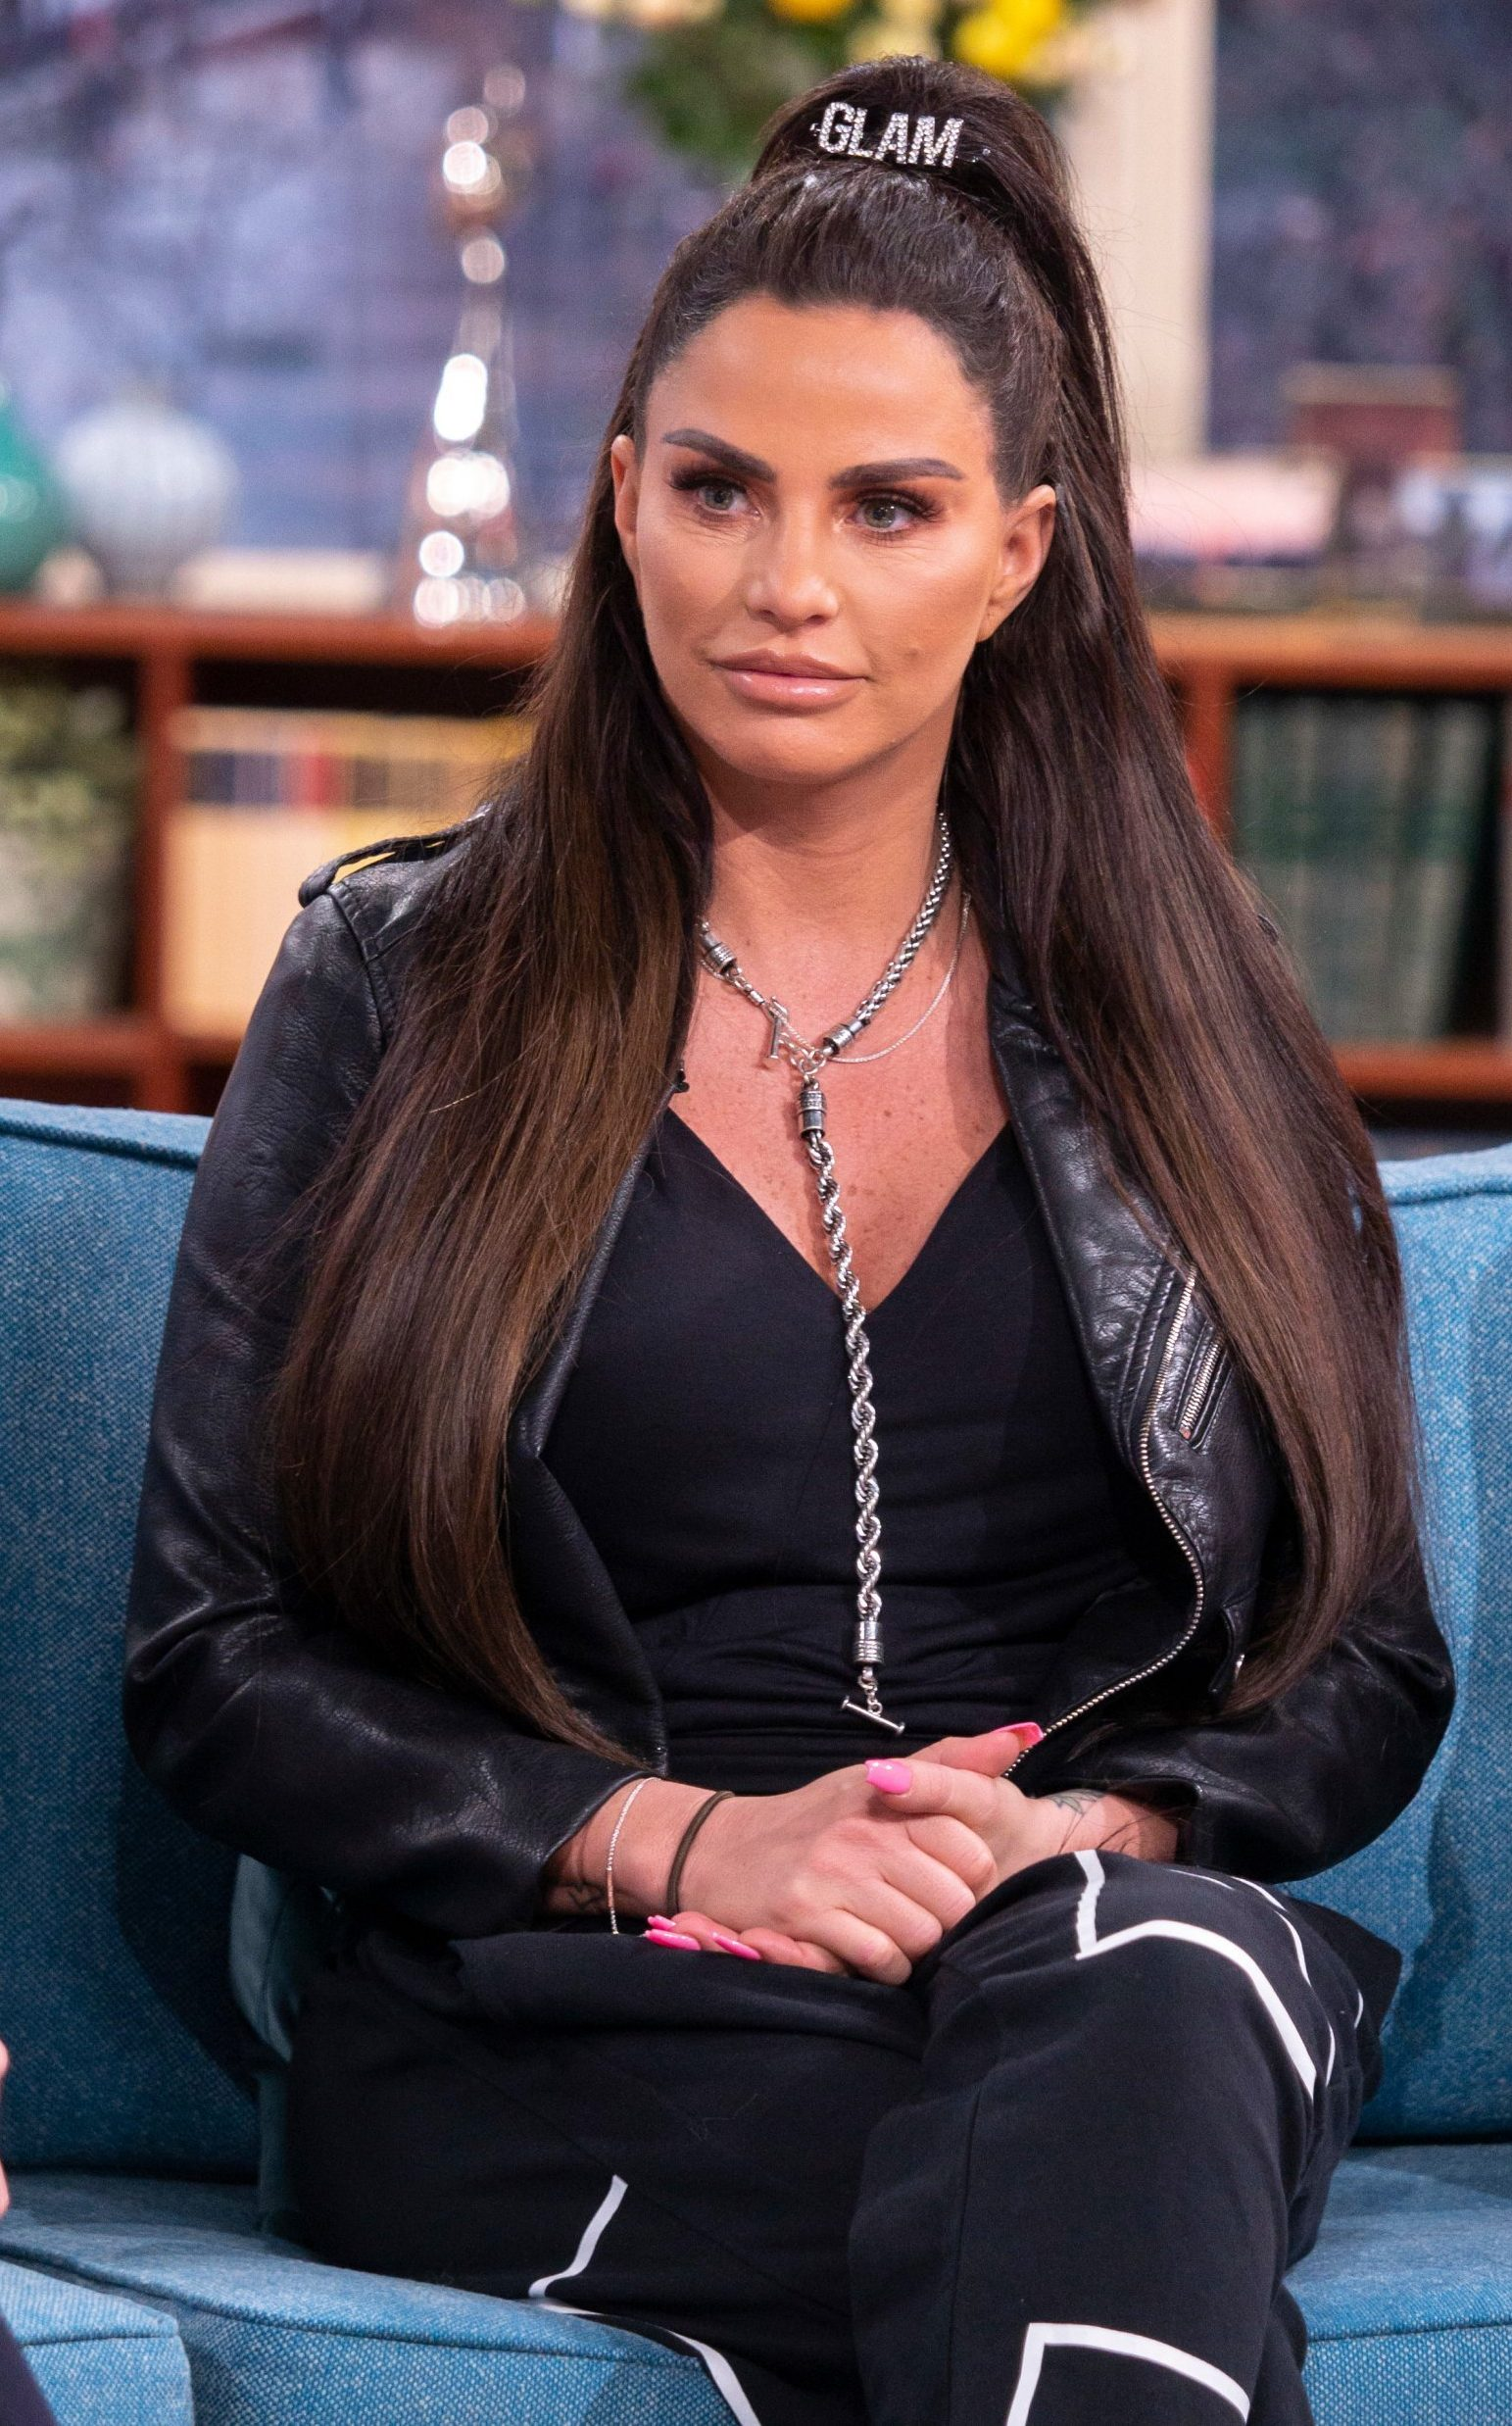 Editorial use only Mandatory Credit: Photo by S Meddle/ITV/REX (10099305d) Katie Price 'This Morning' TV show, London, UK - 08 Feb 2019 KATIE PRICE: ?HARVEY IS NOW A DANGER TO HIMSELF? As one in four carers say they are close to breaking point and haven?t had a day off in more than five years, Katie Price has made the brave admission that she also struggles to cope and has made the decision to put her son into residential care. The disability rights campaigner and mother-of-five says Harvey - who has a number of medical conditions - is a danger to not only himself but the rest of the family. Joining Katie is agony aunt Deidre Sanders, who says getting professional help is the right thing to do, no matter how heartbreaking the decision is.